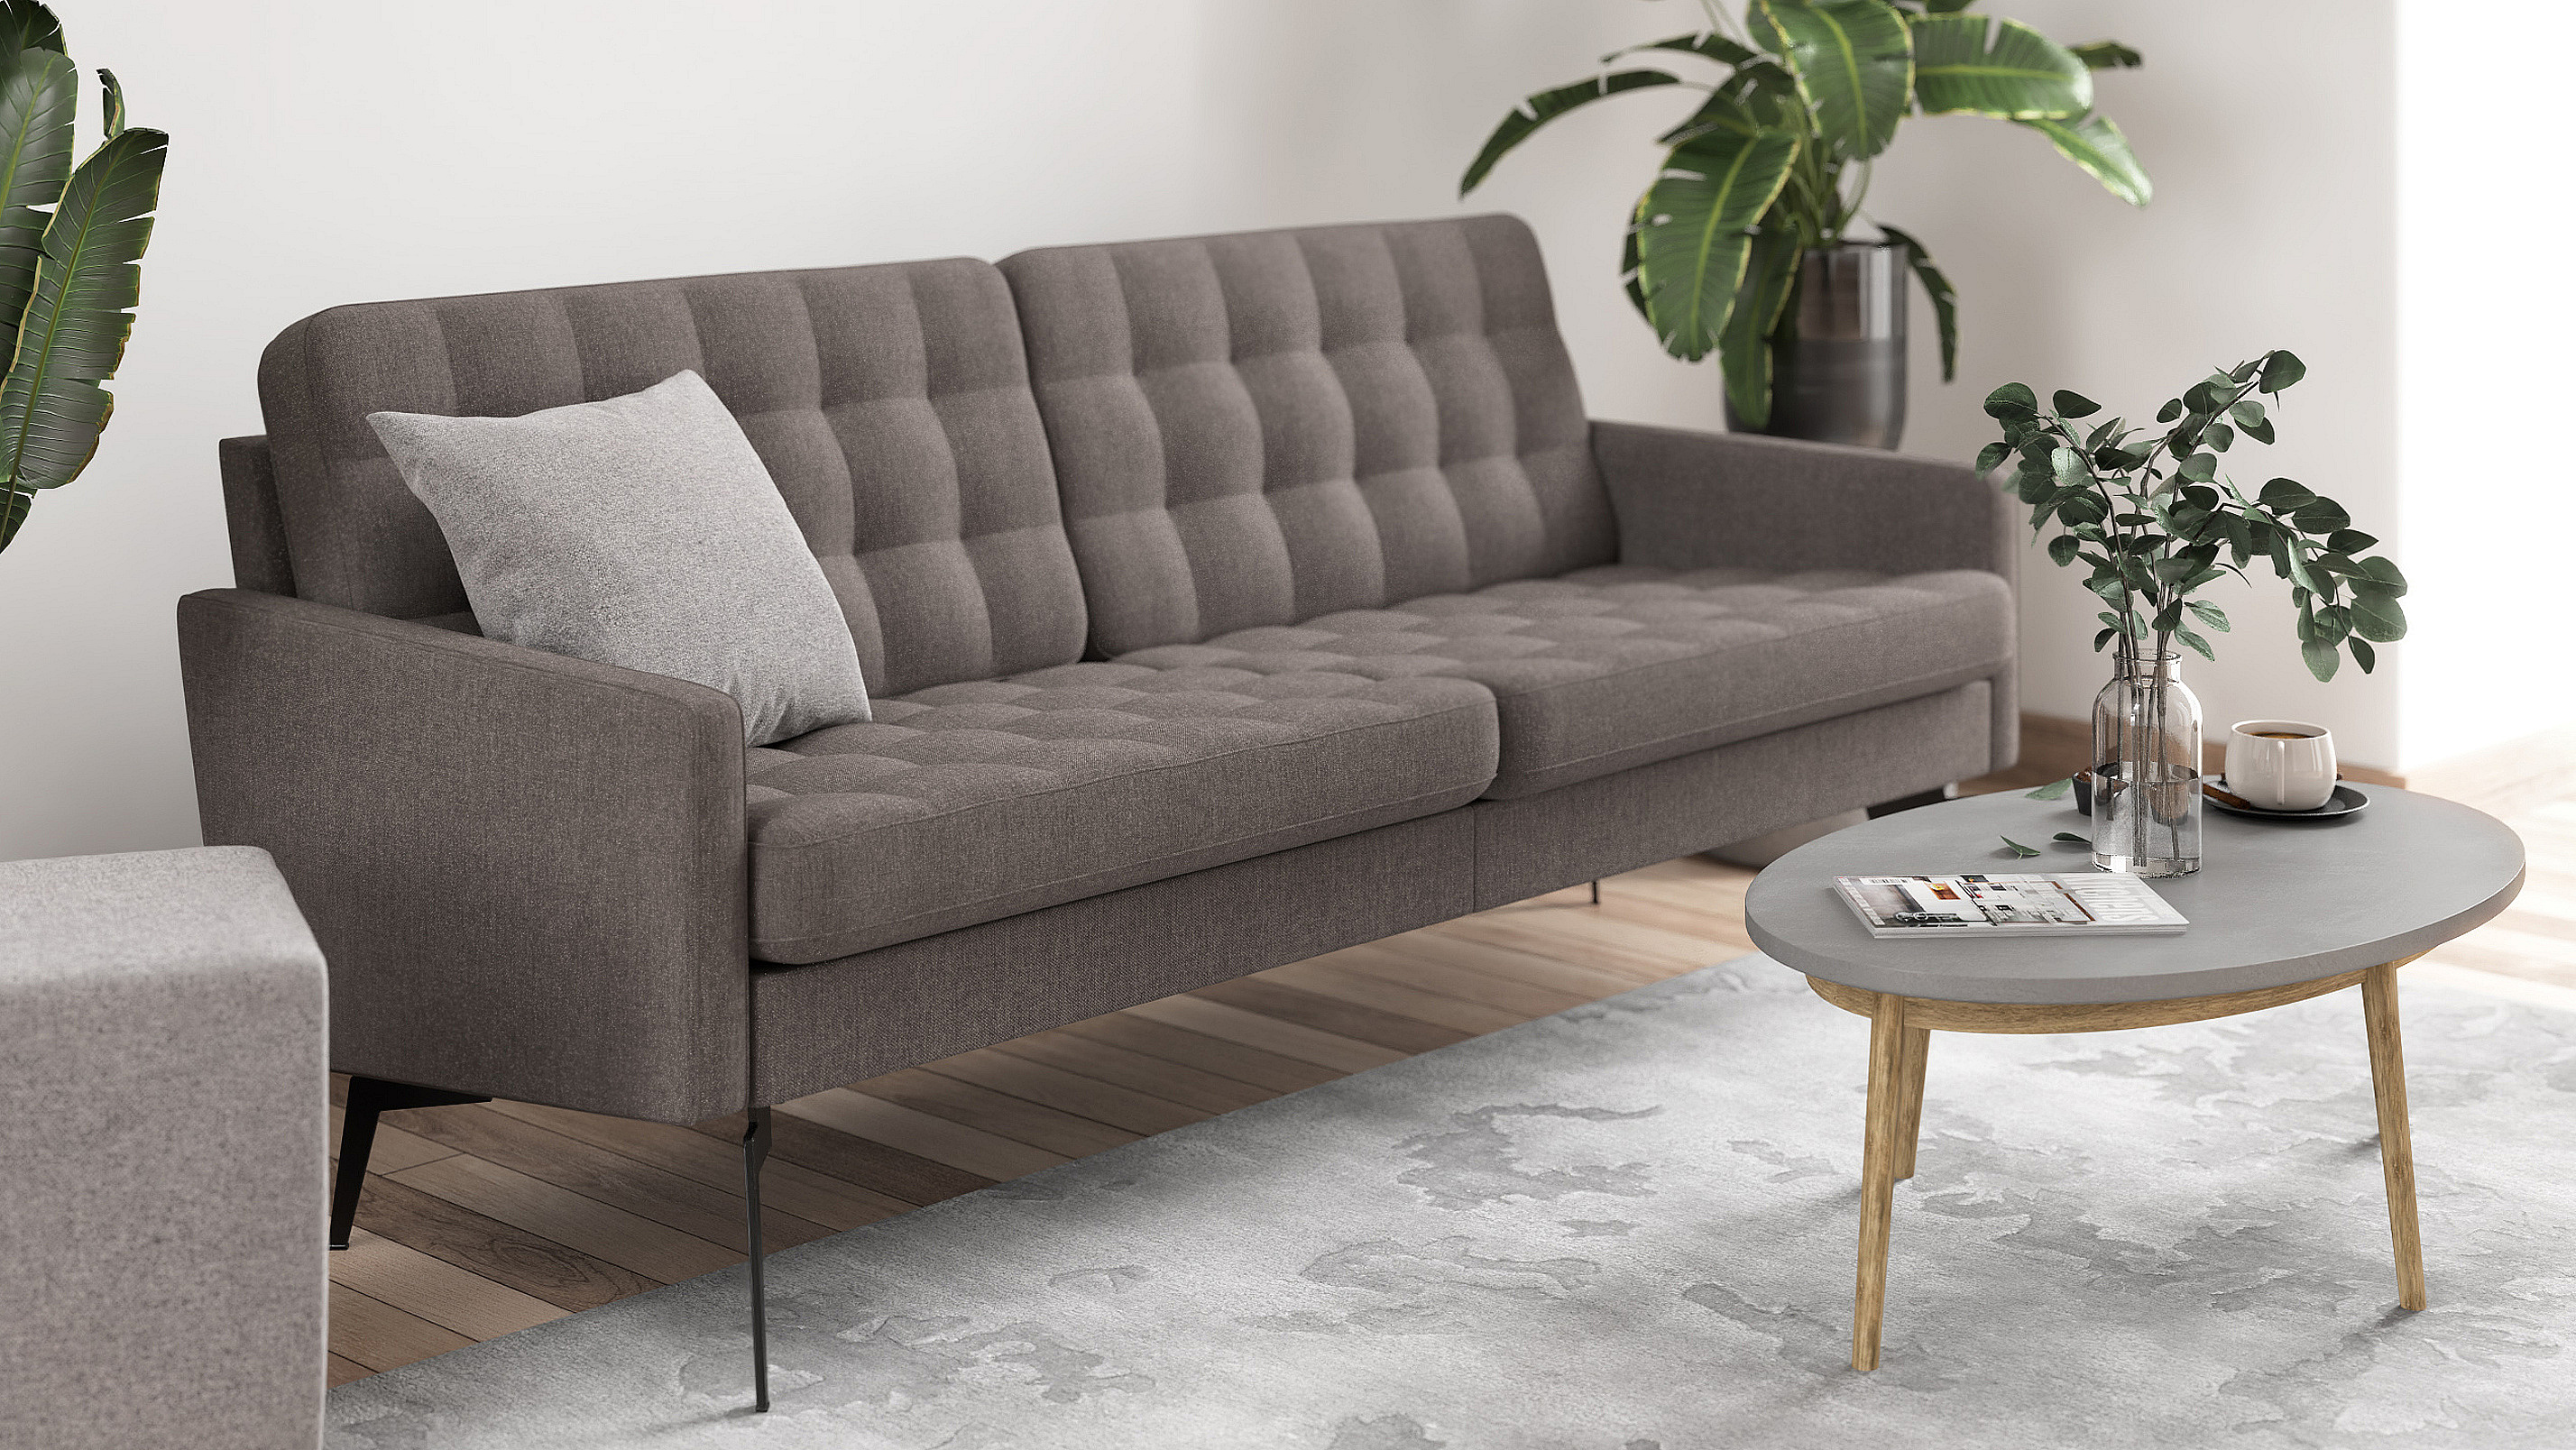 Living room example with the sofa Icon in dark grey.